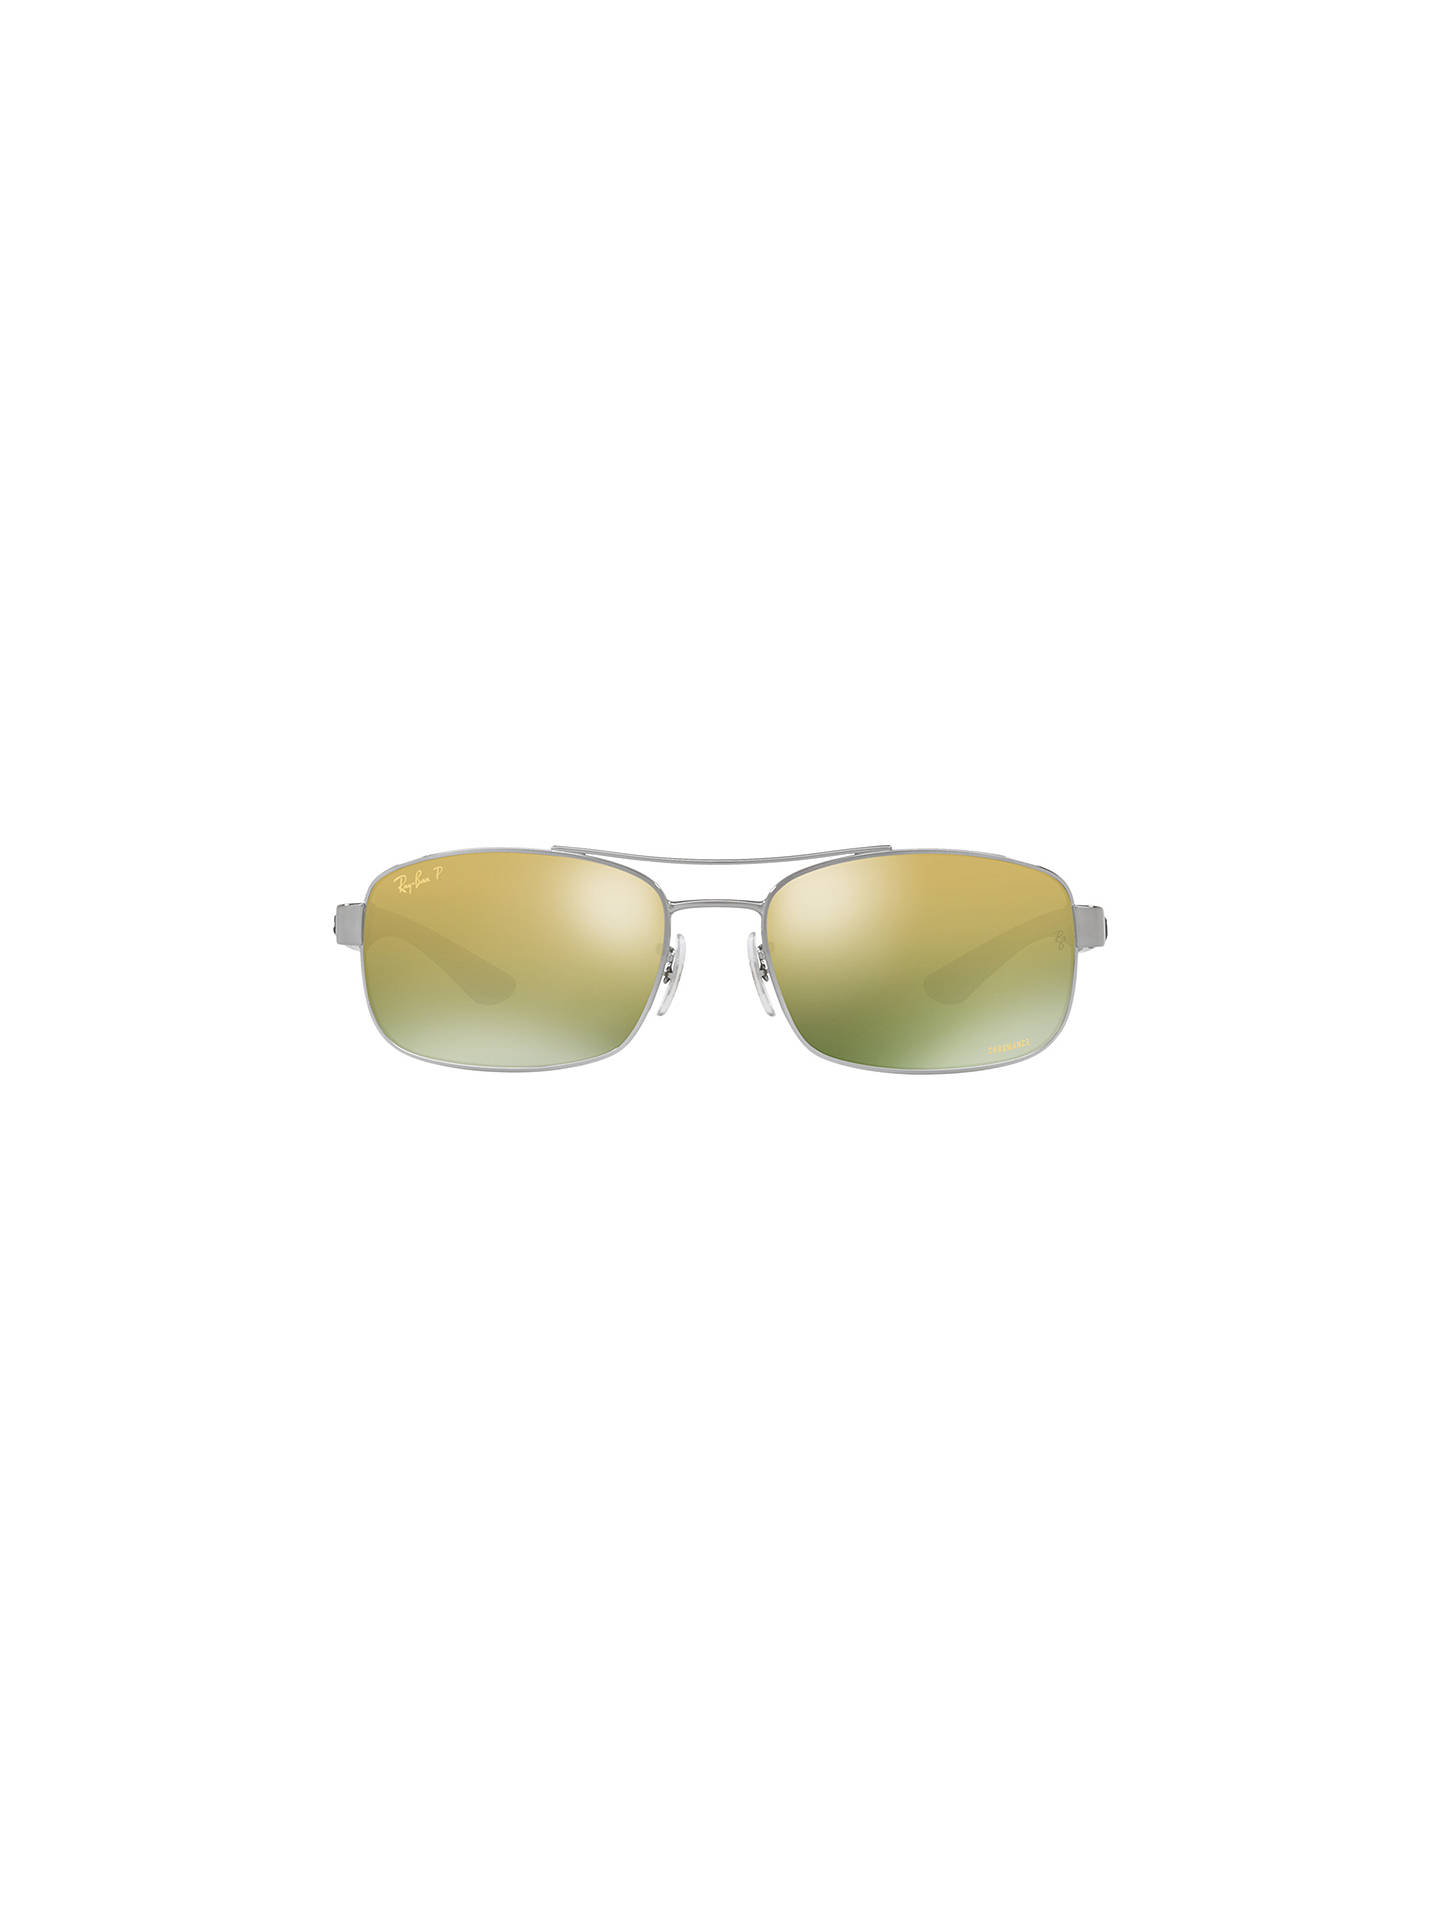 BuyRay-Ban RB8318CH Polarised Rectangular Sunglasses, Silver/Mirror Green Online at johnlewis.com